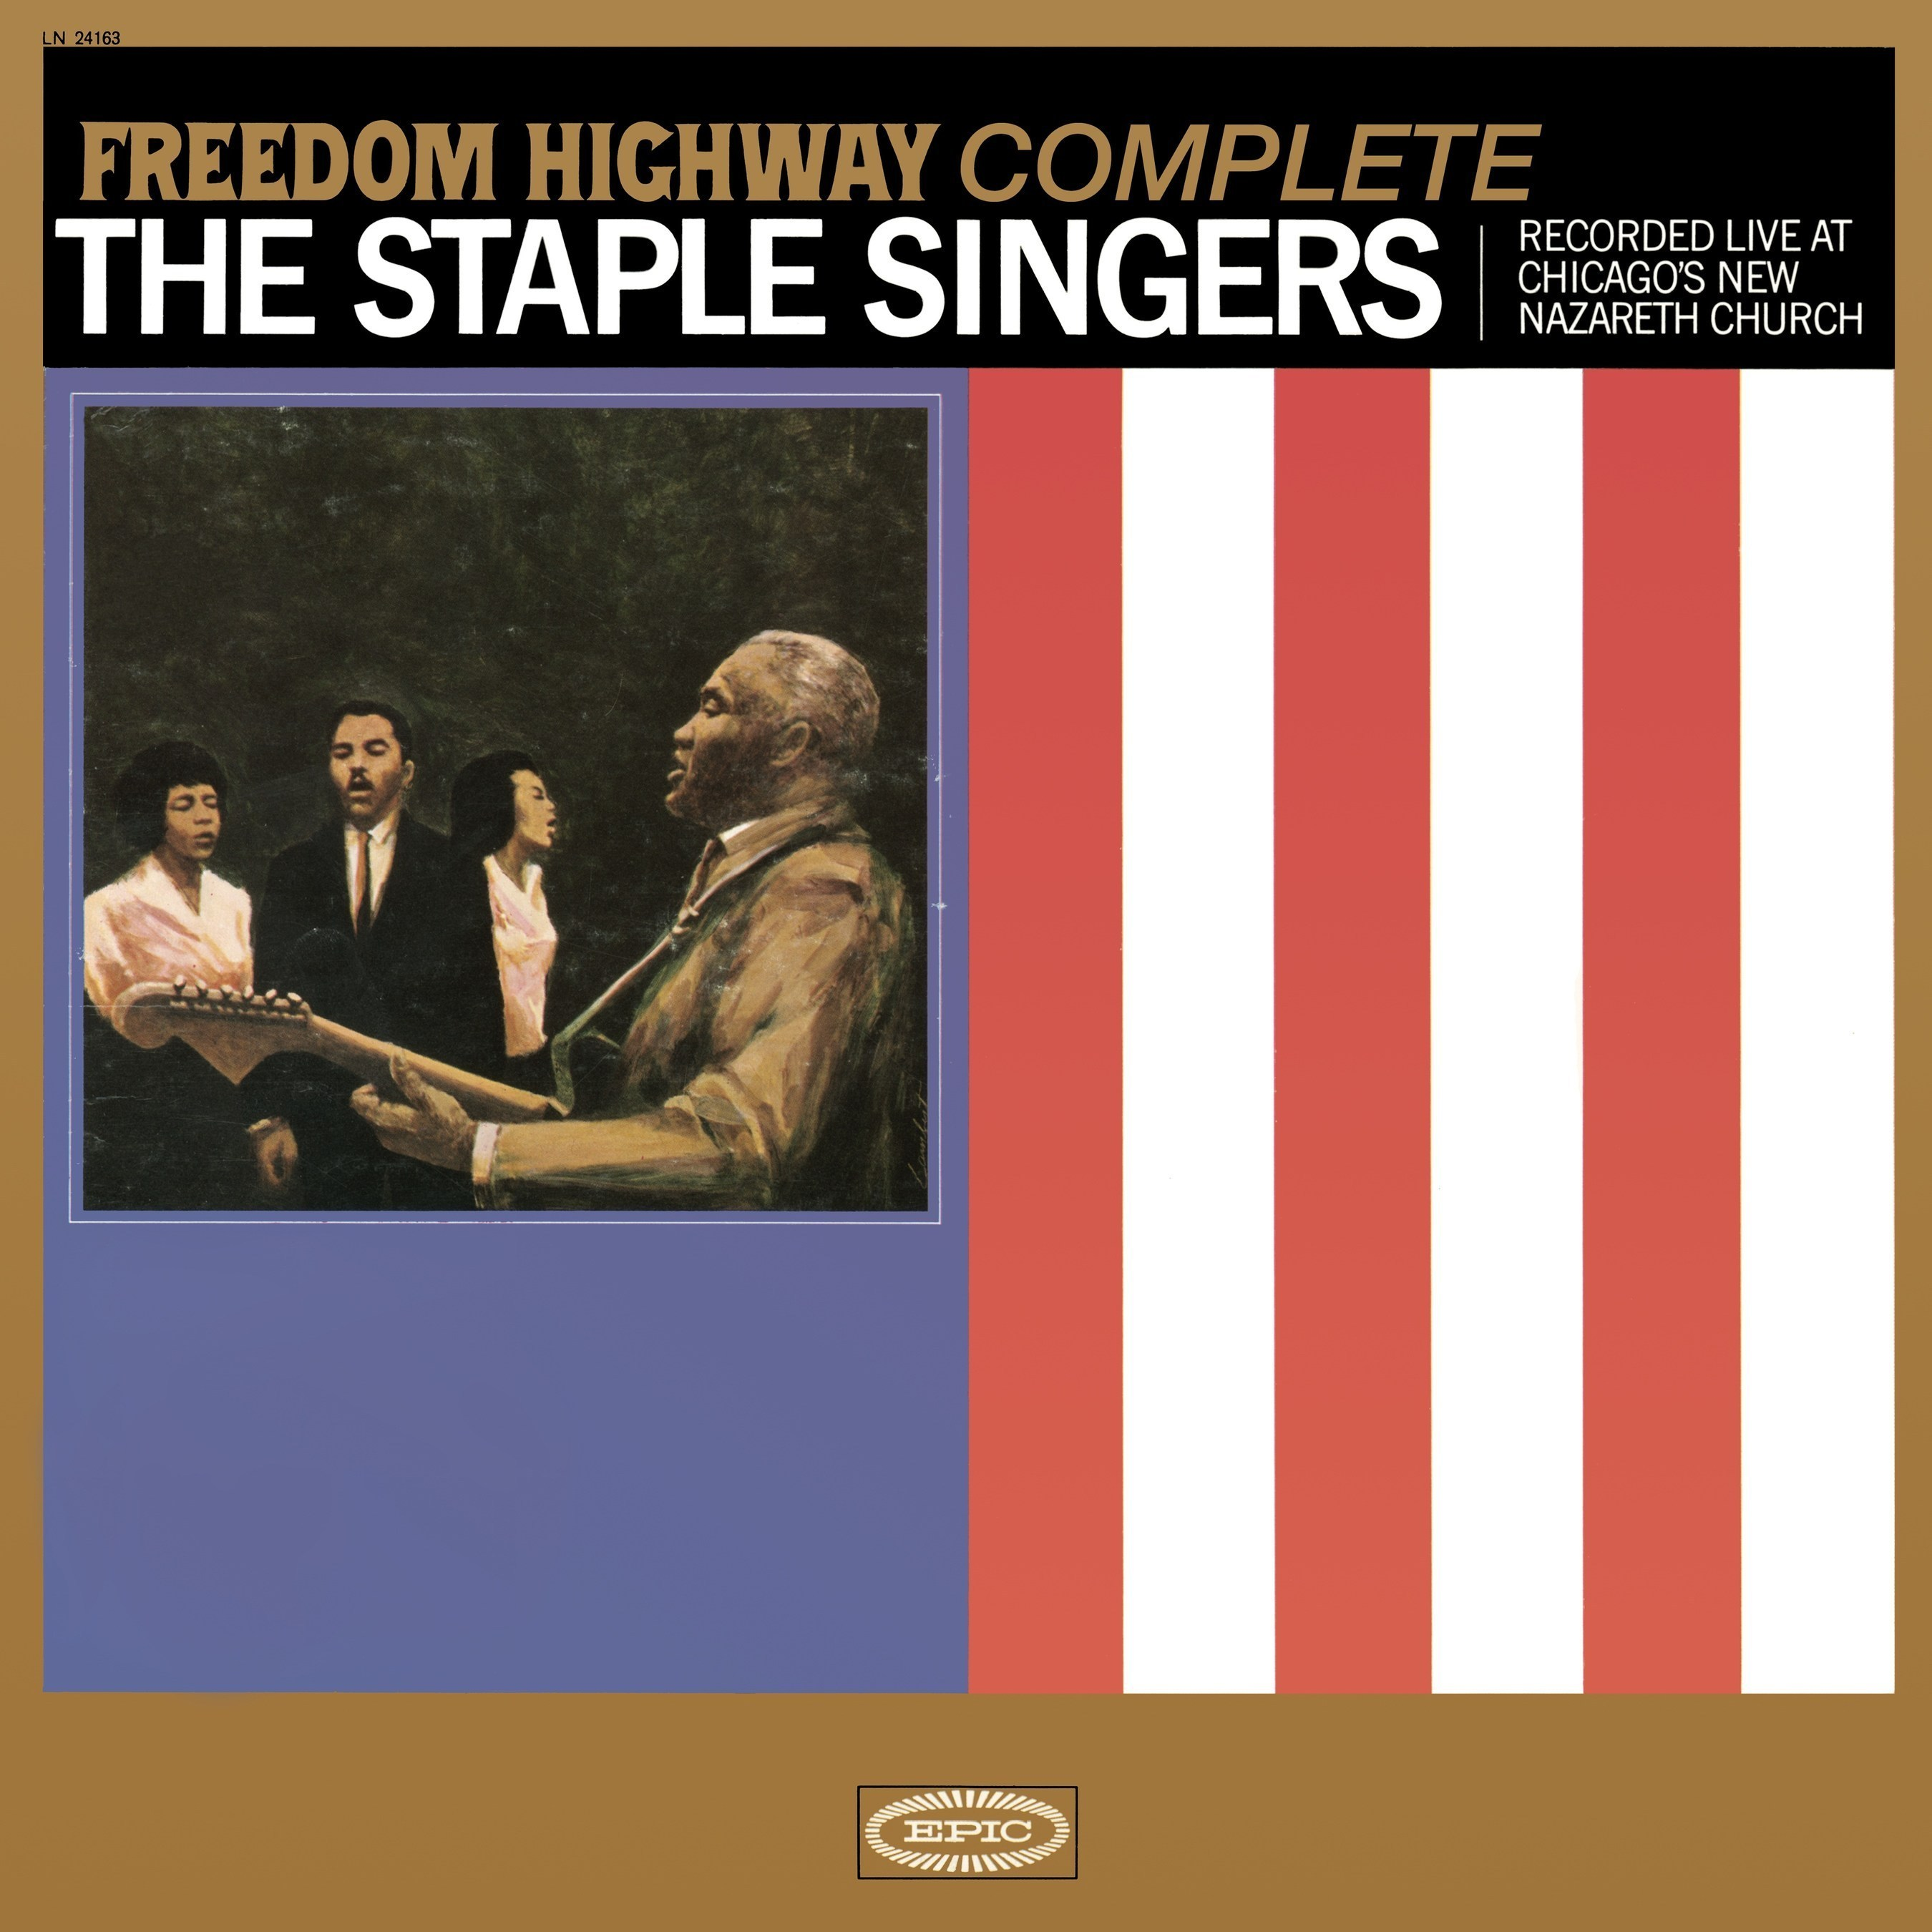 Freedom Highway Complete will be available as a single CD, as a digital release online, and in a special 2LP ...